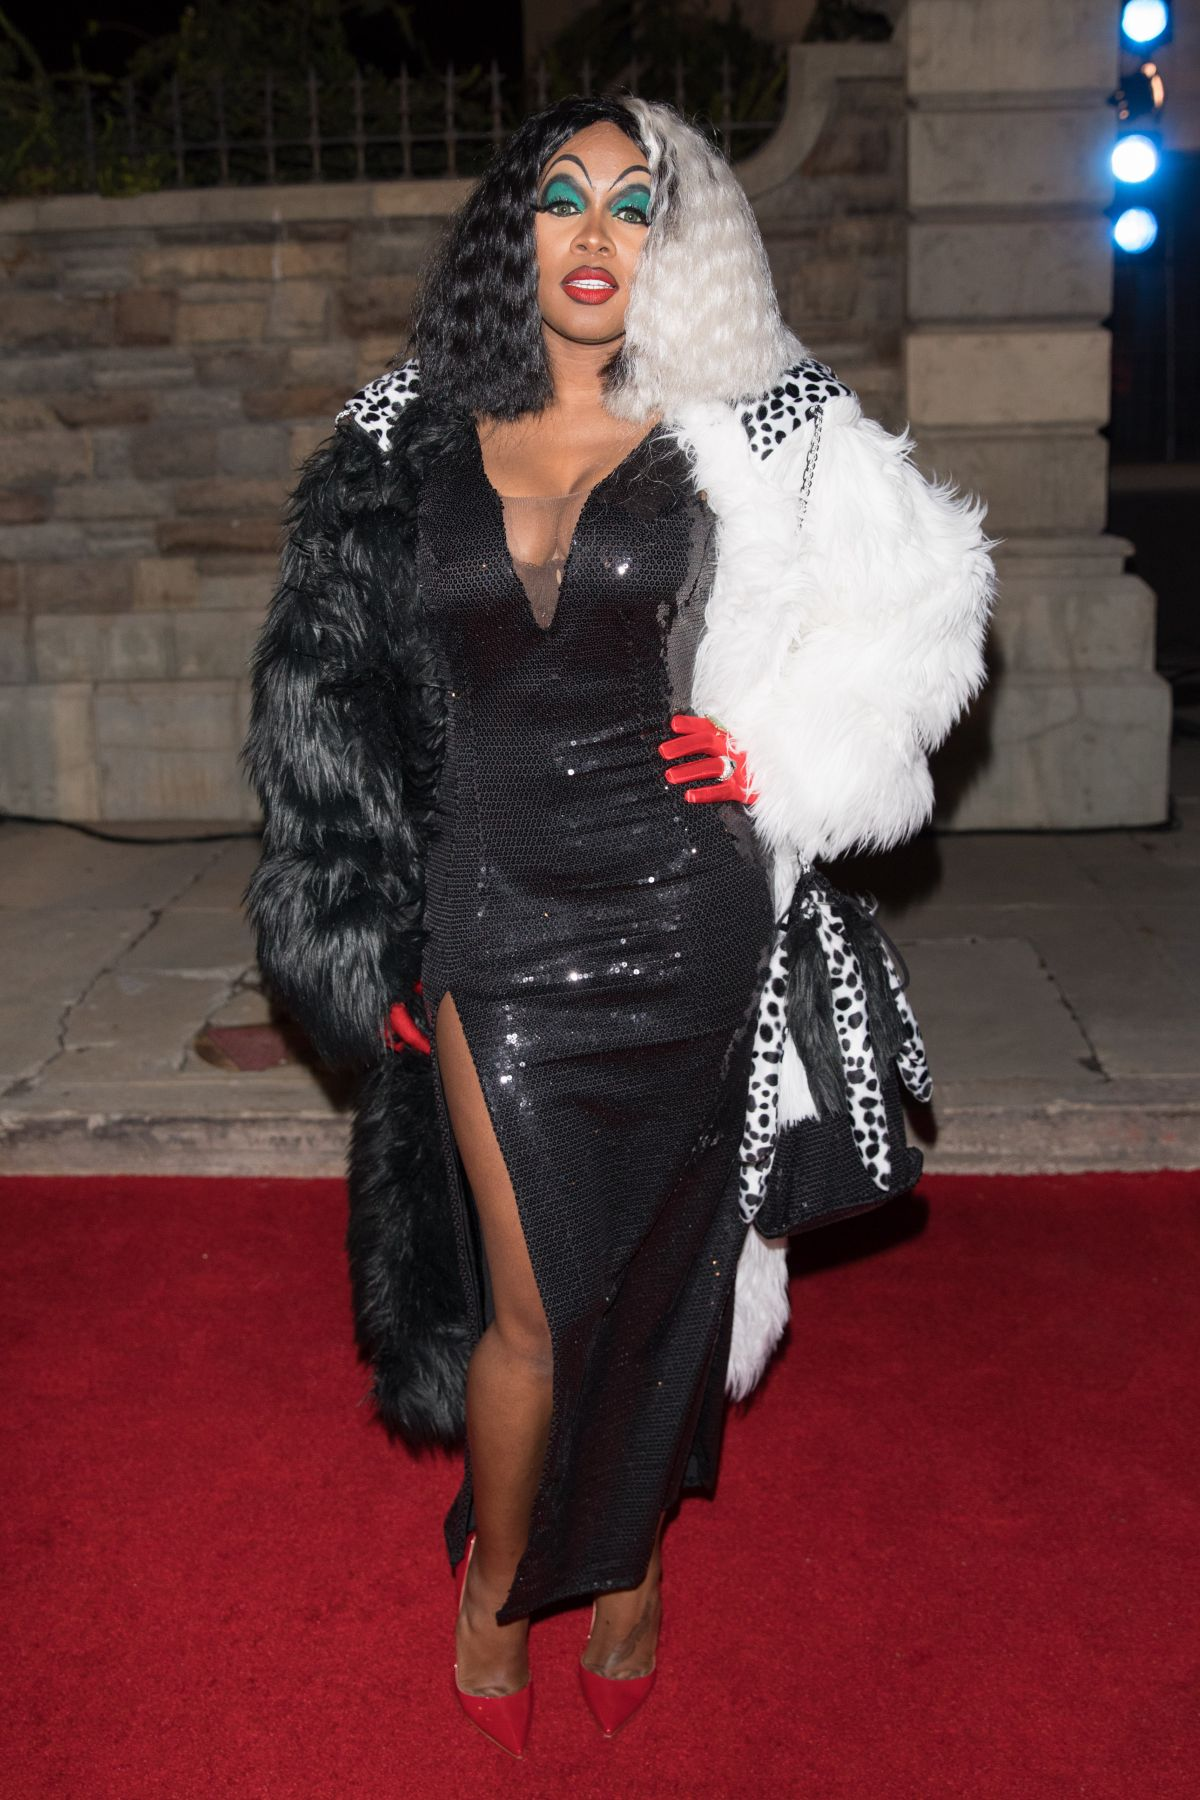 Remy Ms Is seen in her costume at Chris Brown Album release party in Universal Studios